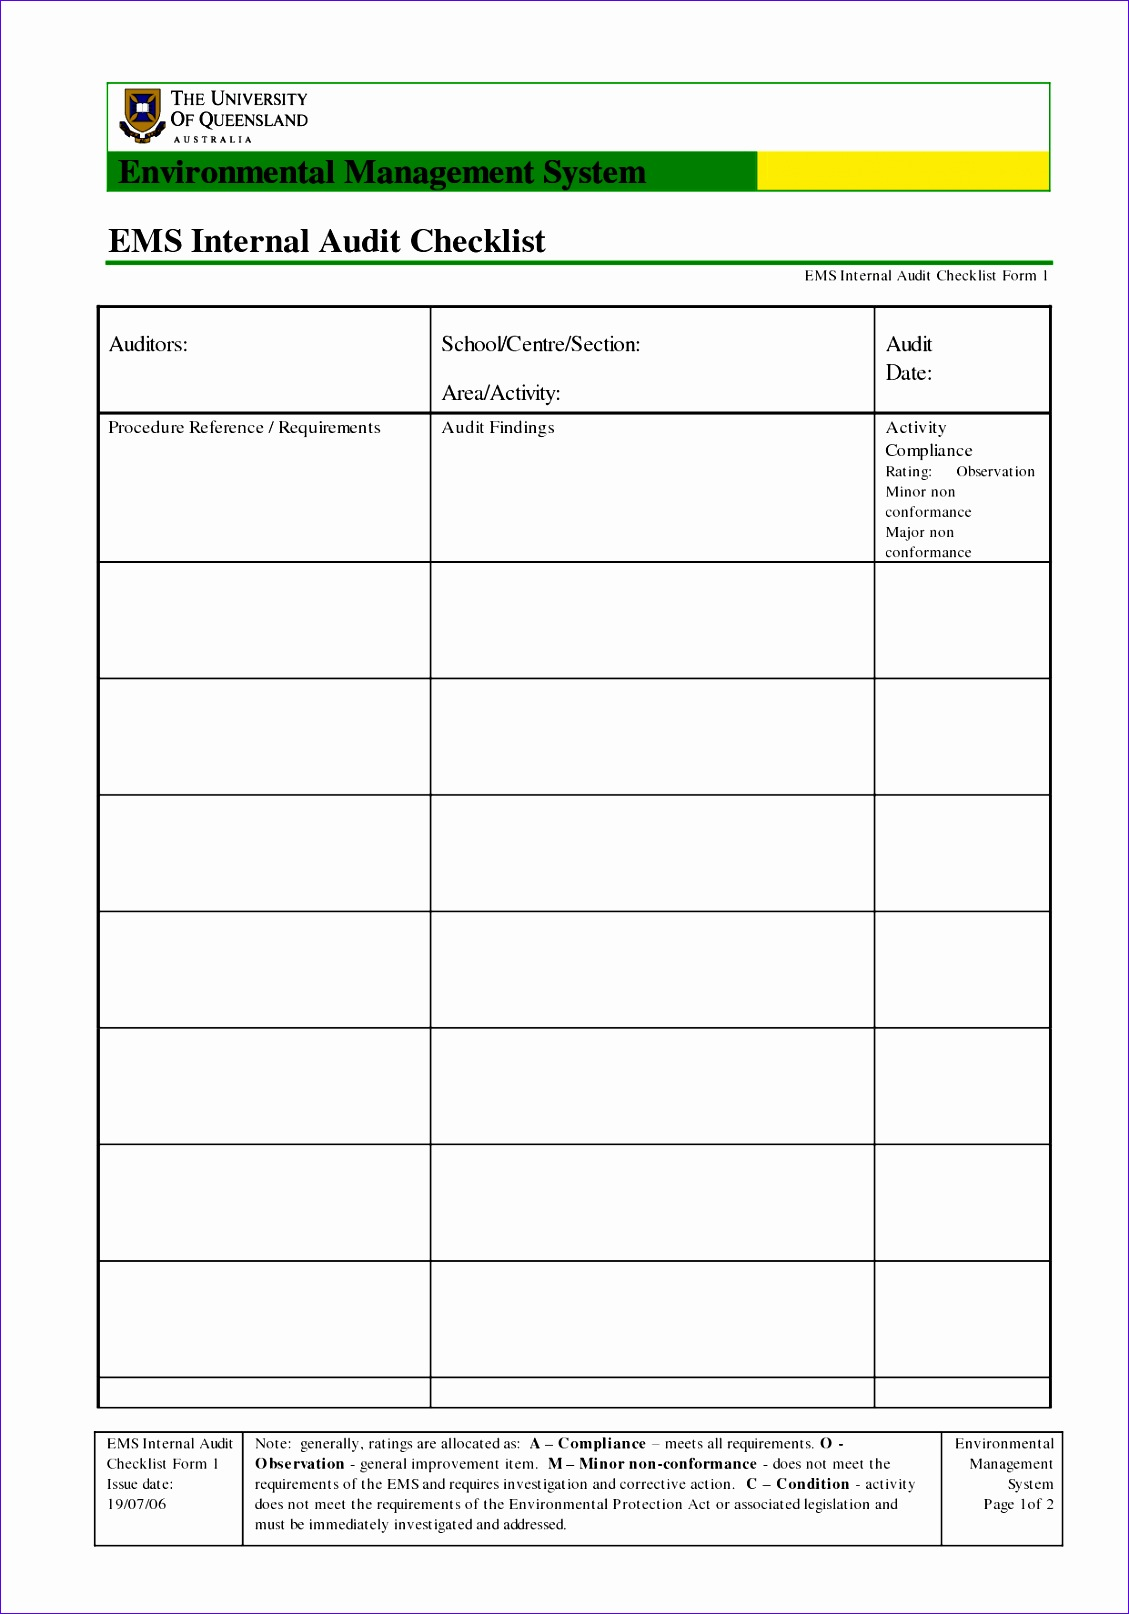 Quality Checklist Template Excel Kguxv Inspirational Best Ems Internal Audit Checklist form Template with Table for